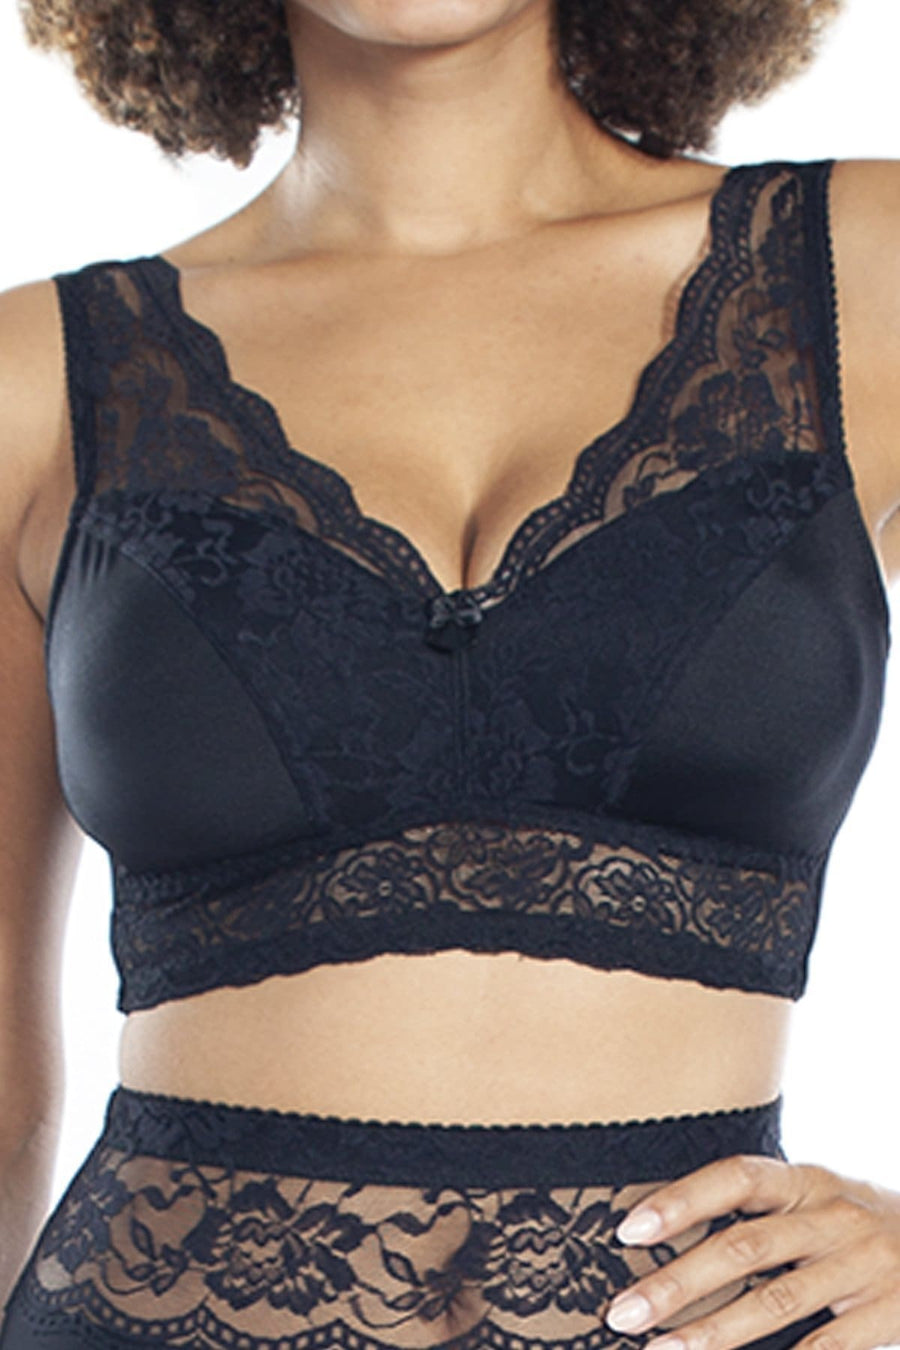 PinUp Girl Lace Leisure Bra w/Pads - Rhonda Shear